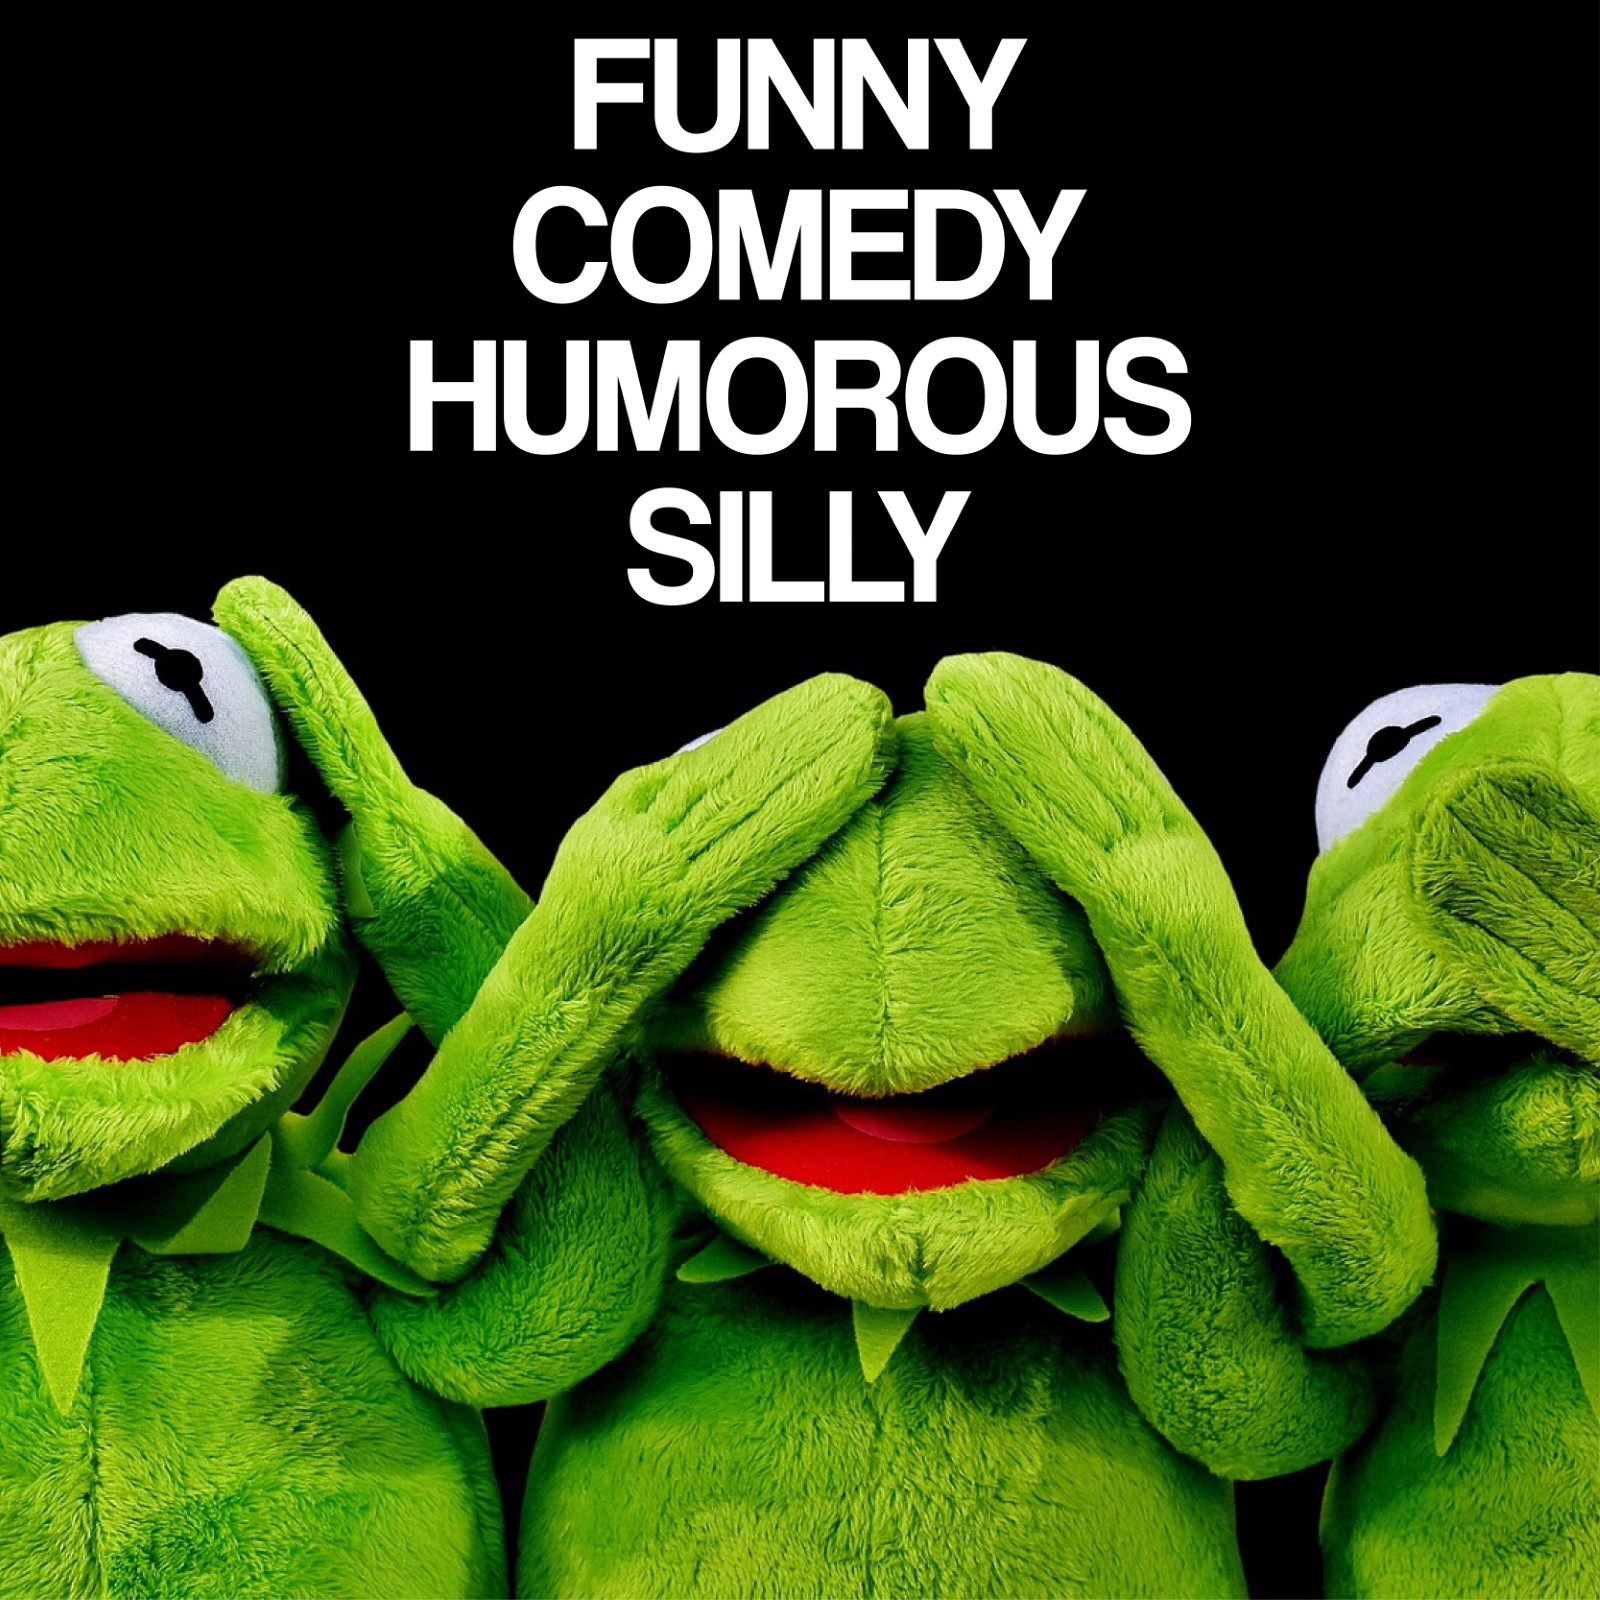 - Funny pieces perfect for comedy, funny or silly content. You can put these on top of anything. Laughter guaranteed.